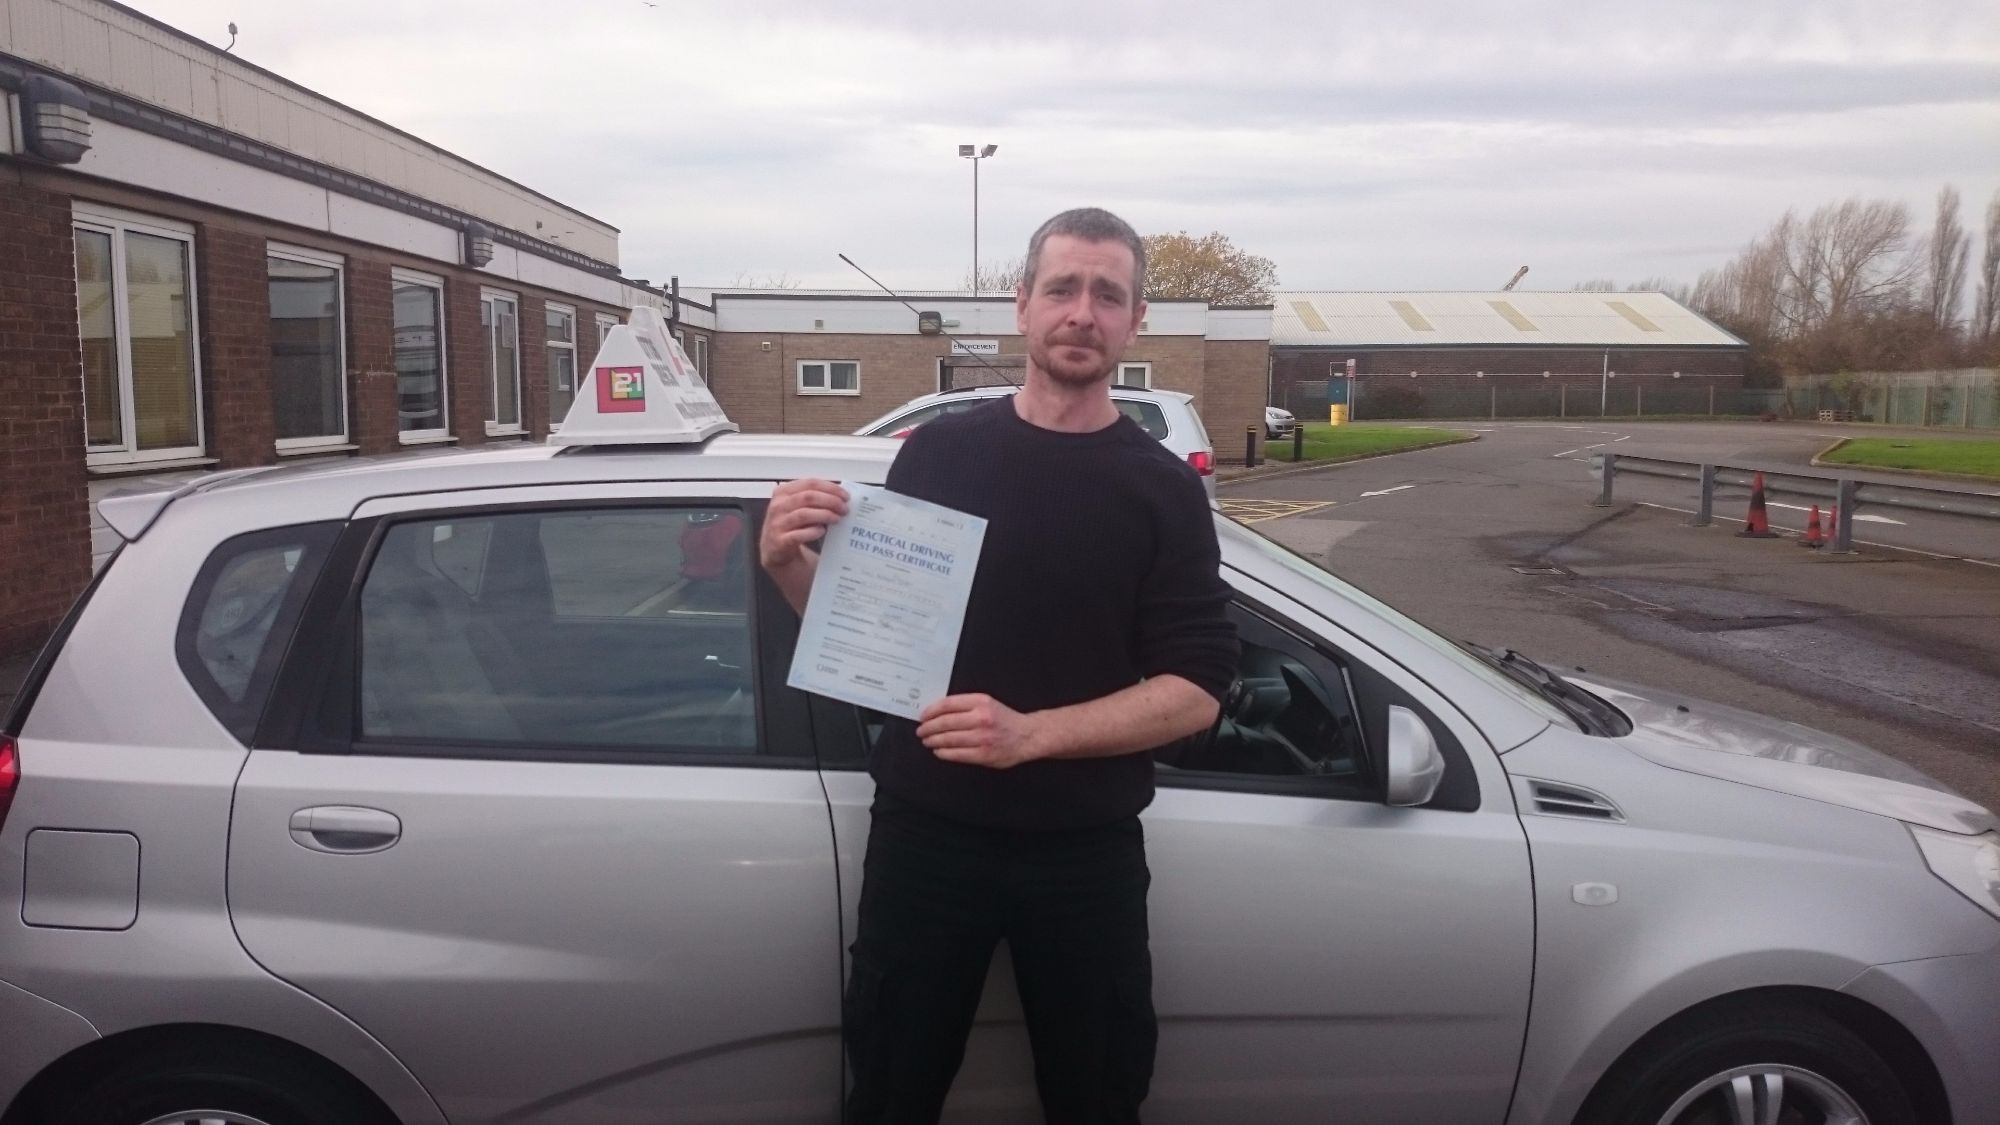 Luke Duffy took his driving lessons and passes his test in Grimsby with 21st Century Driving